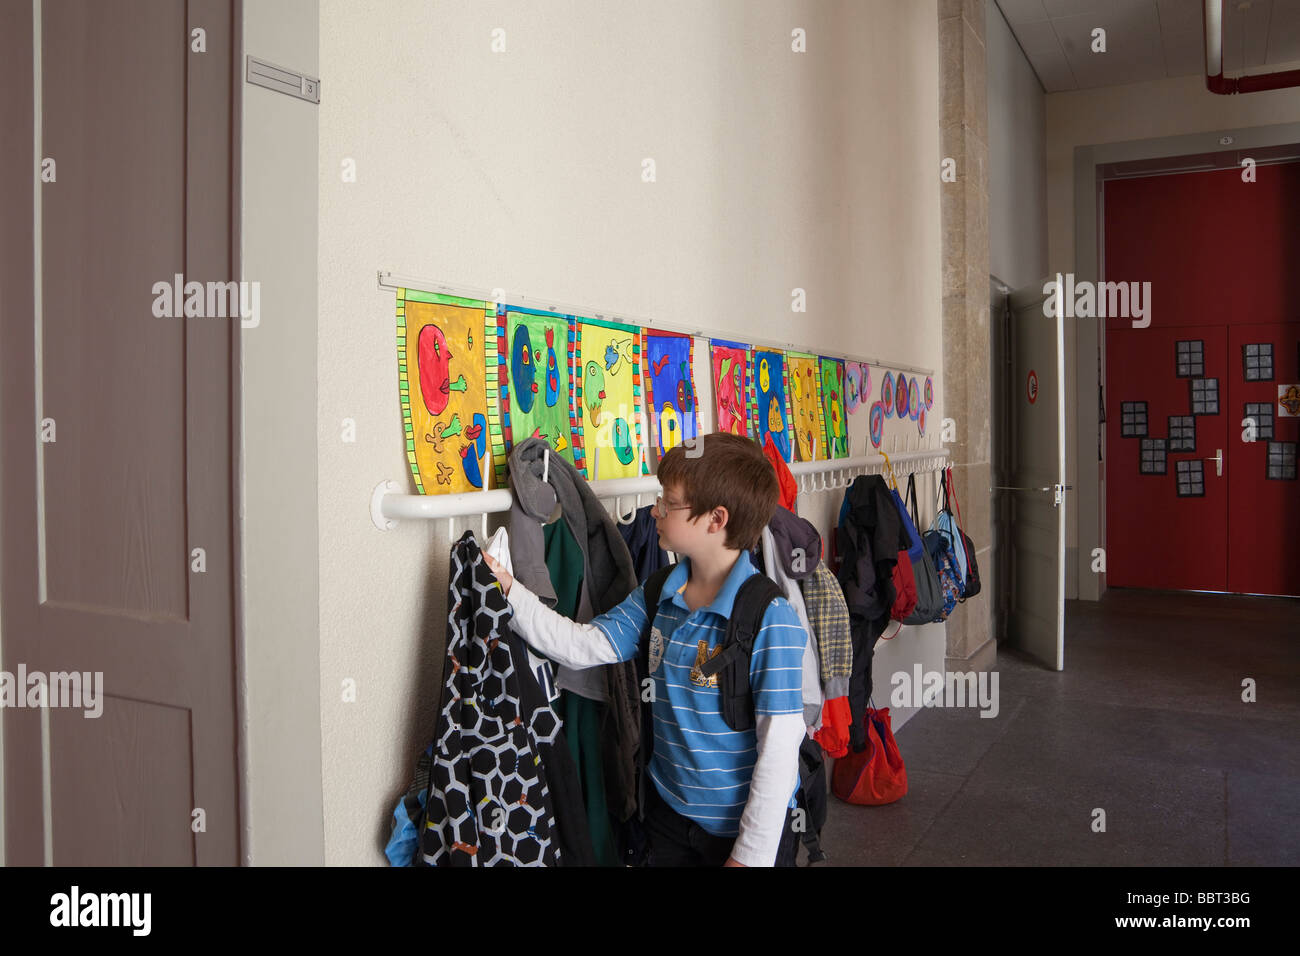 9 year old boy taking his coat off of a coat hook outside his classroom. Charles Lupica - Stock Image